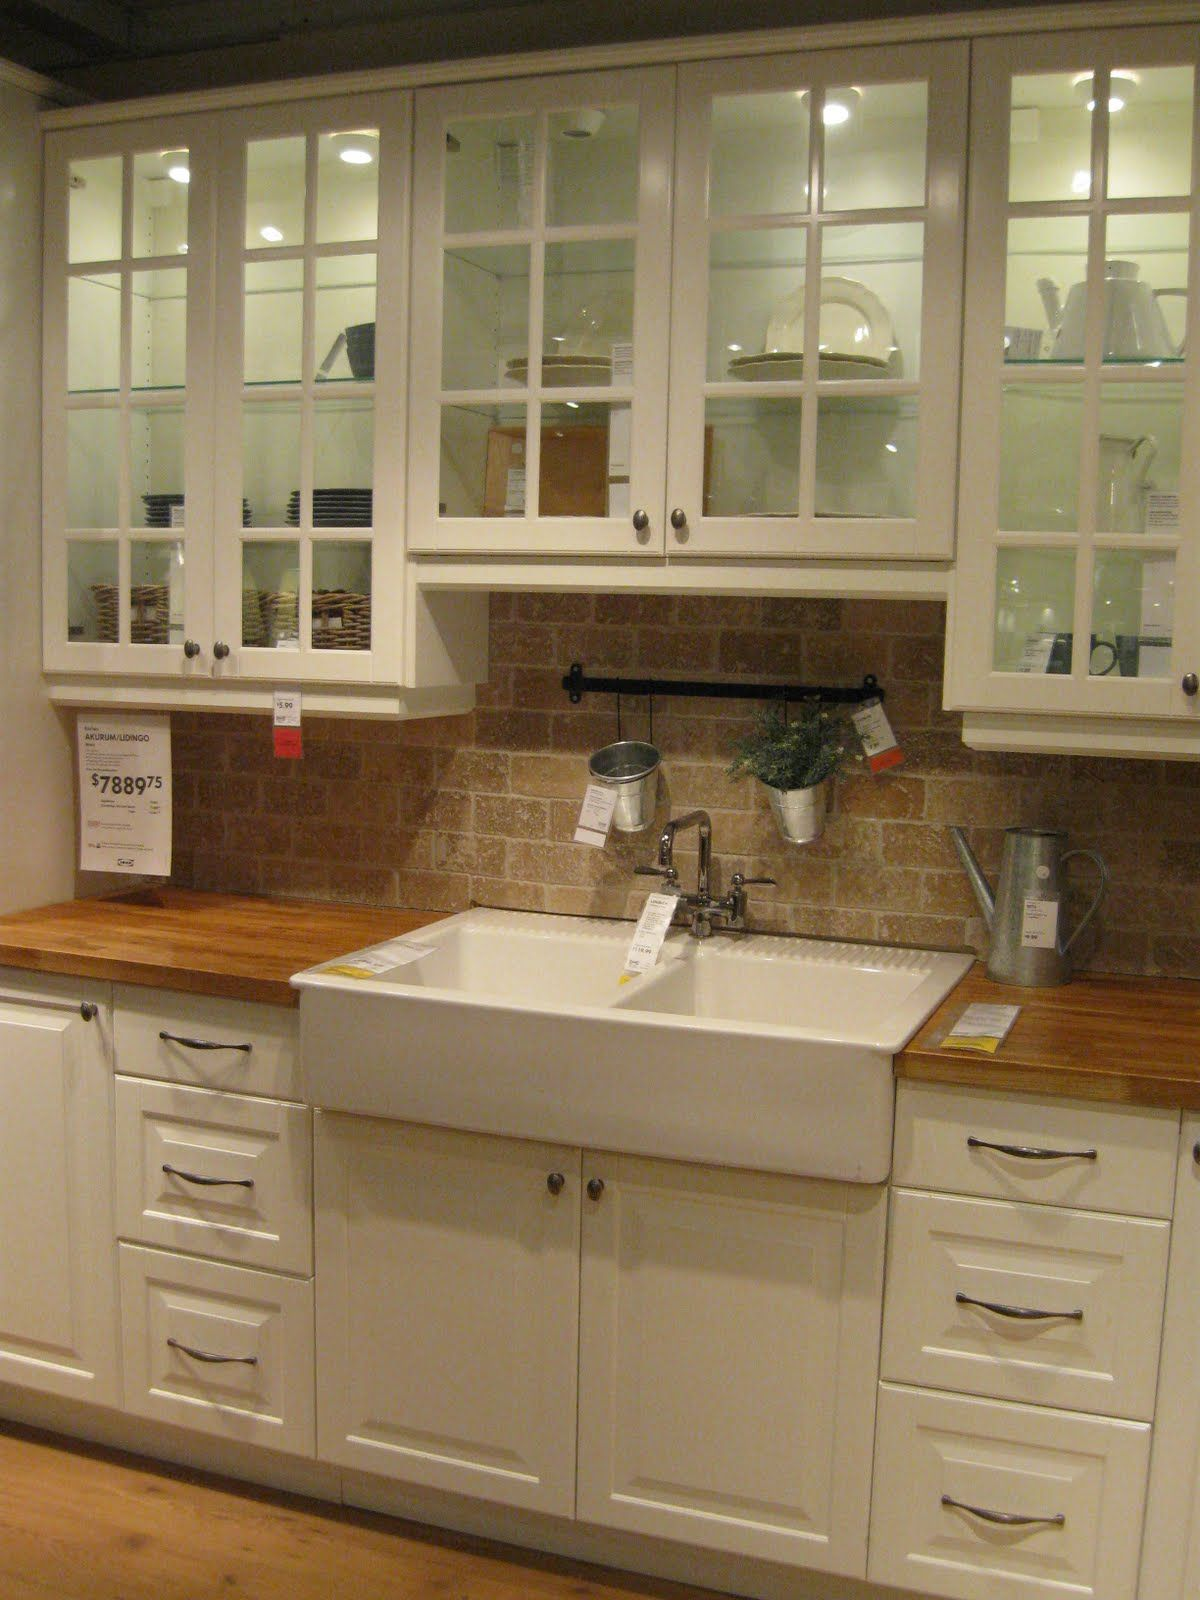 Kleine Küche Landhaus Love This Drop In Apron Front Sink And Butcher Block Counter Tops